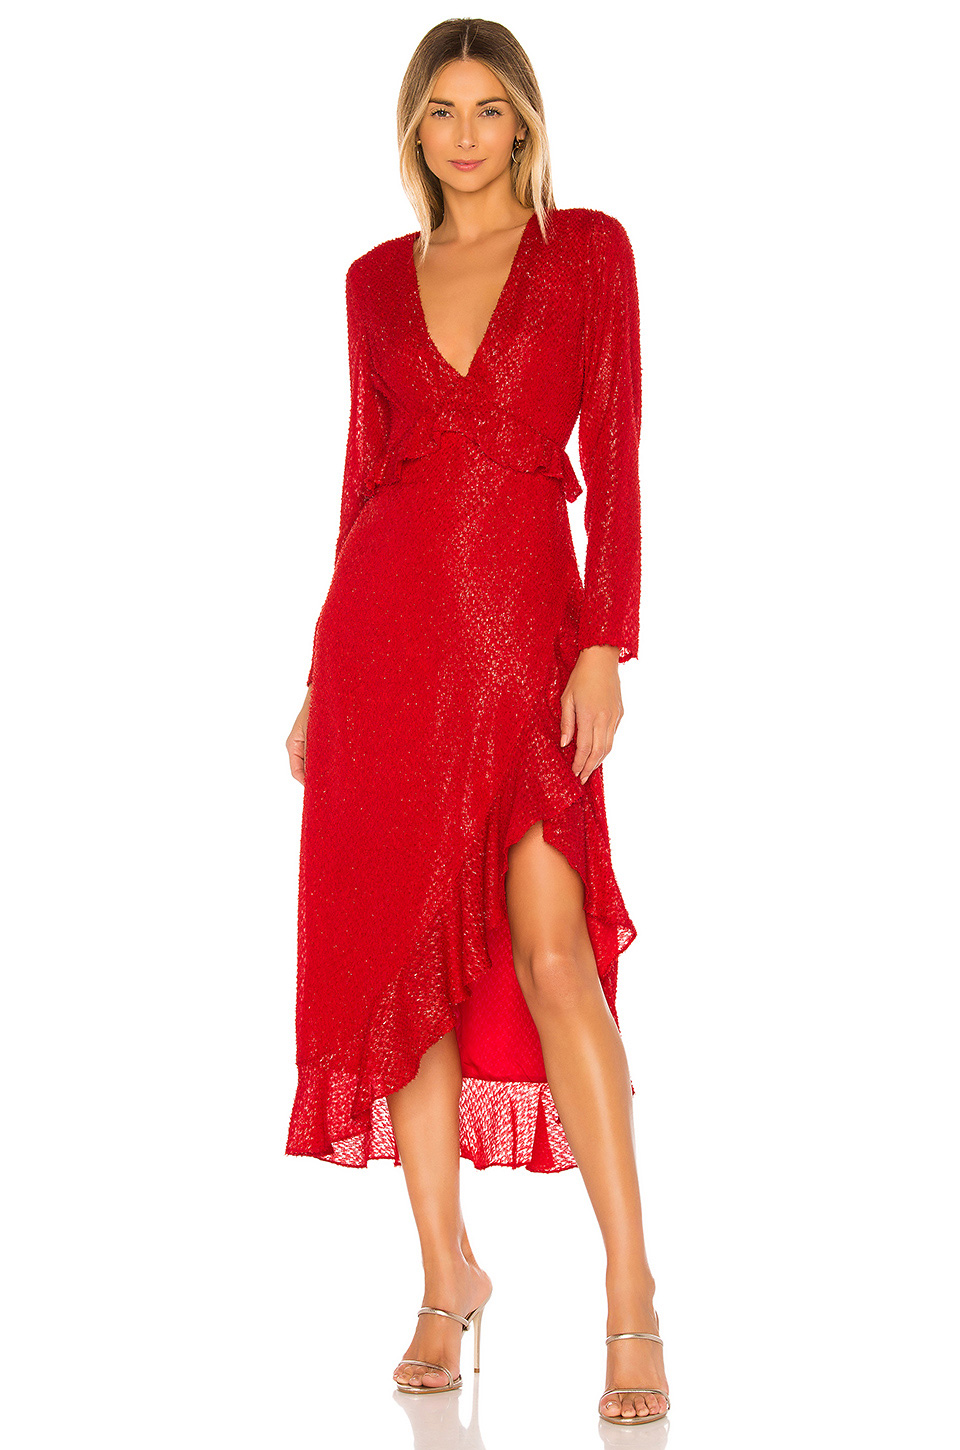 x REVOLVE Justina Maxi Dress House of Harlow 1960 brand: House of Harlow 1960